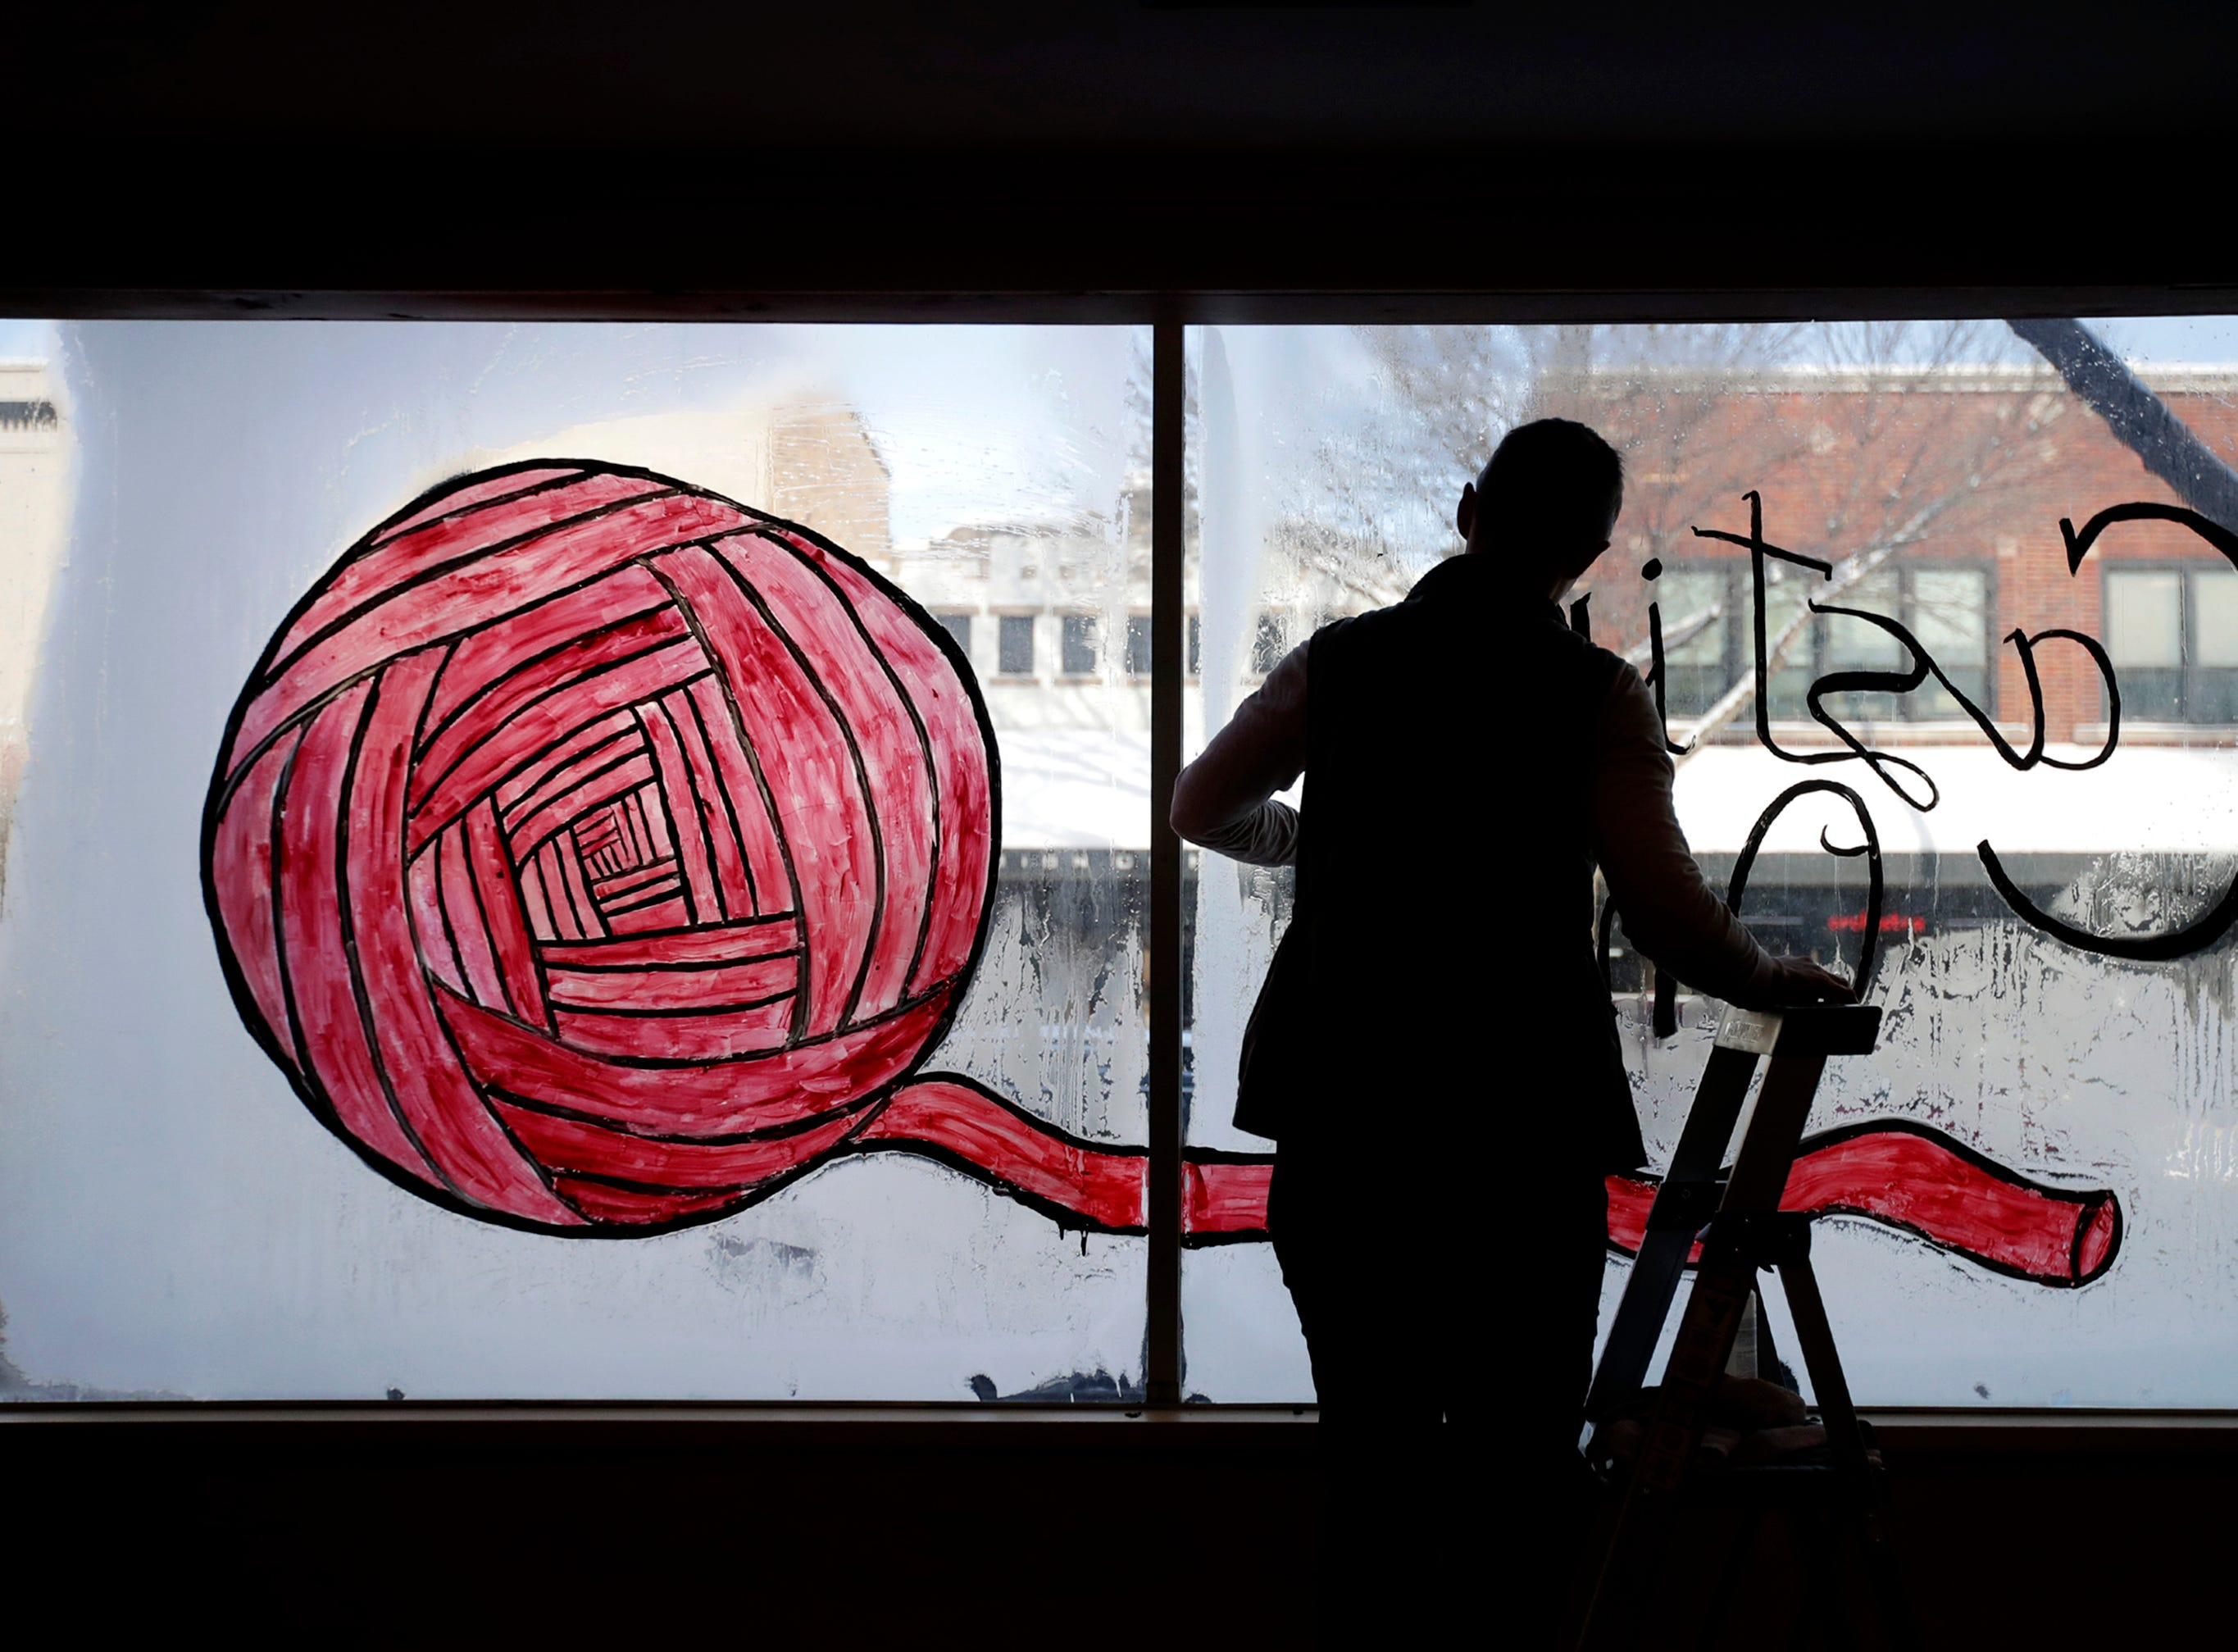 Sam Rabideau, co-owner of Casting On, scrapes their temporary sign off the front window Friday, Jan. 25, 2019 in preparation for their soft opening on Saturday, Jan 26, in Appleton, Wis.